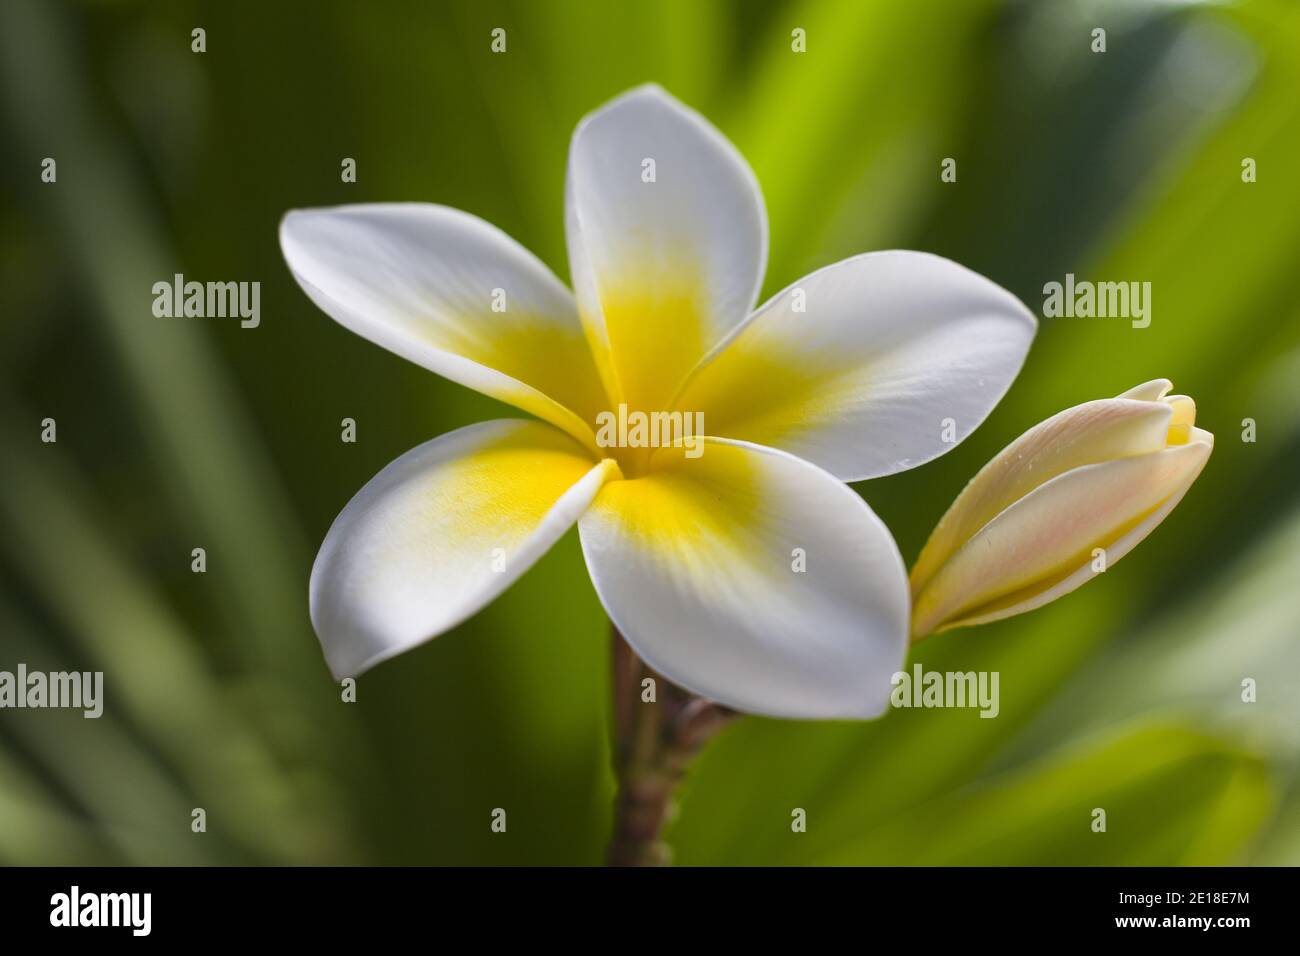 """Plumeria flowers, a fragrant blossom deeply tied to Hawaii and its culture, also called """"""""frangipani Stock Photo"""